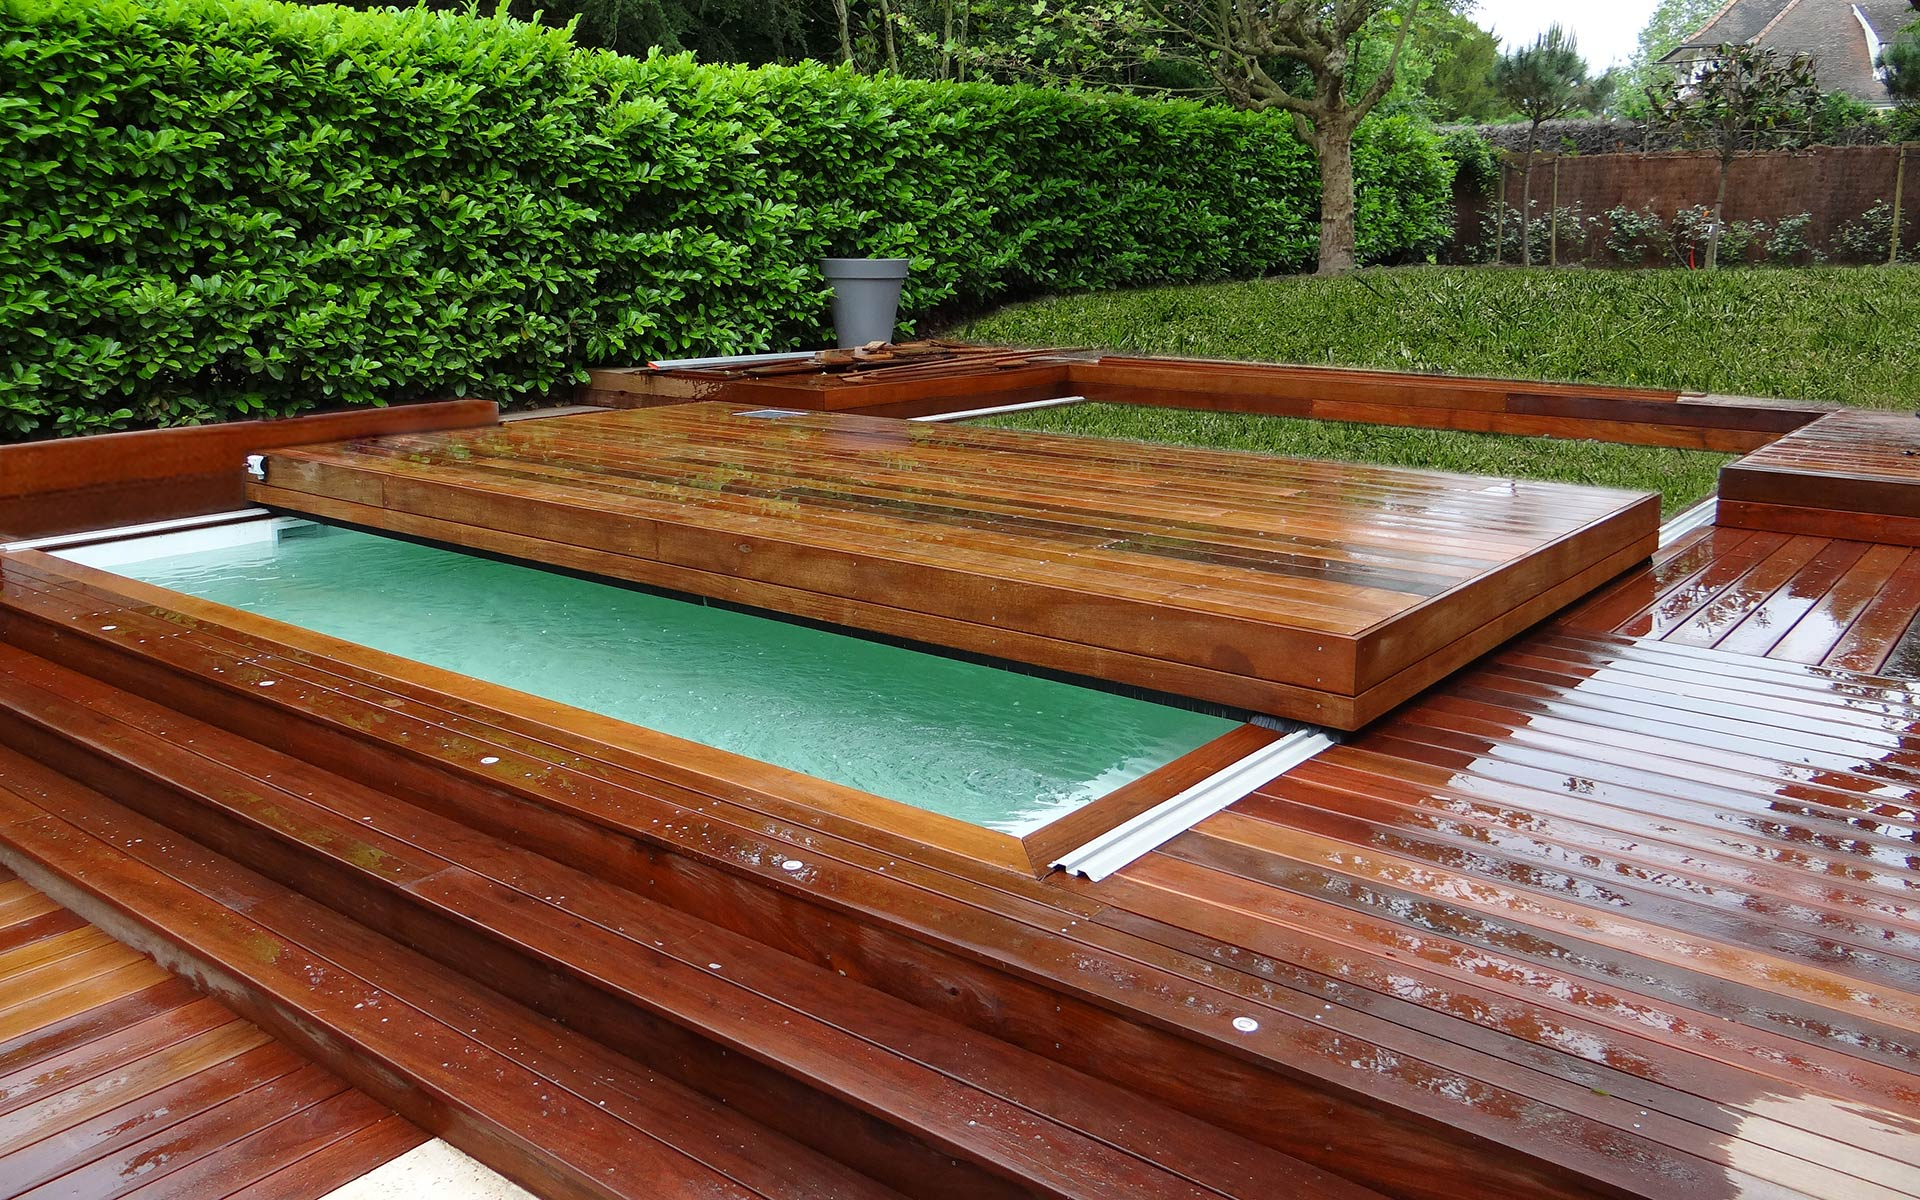 Terrasse mobile pour piscine hidden pool fond mobile for Terrasse coulissante piscine